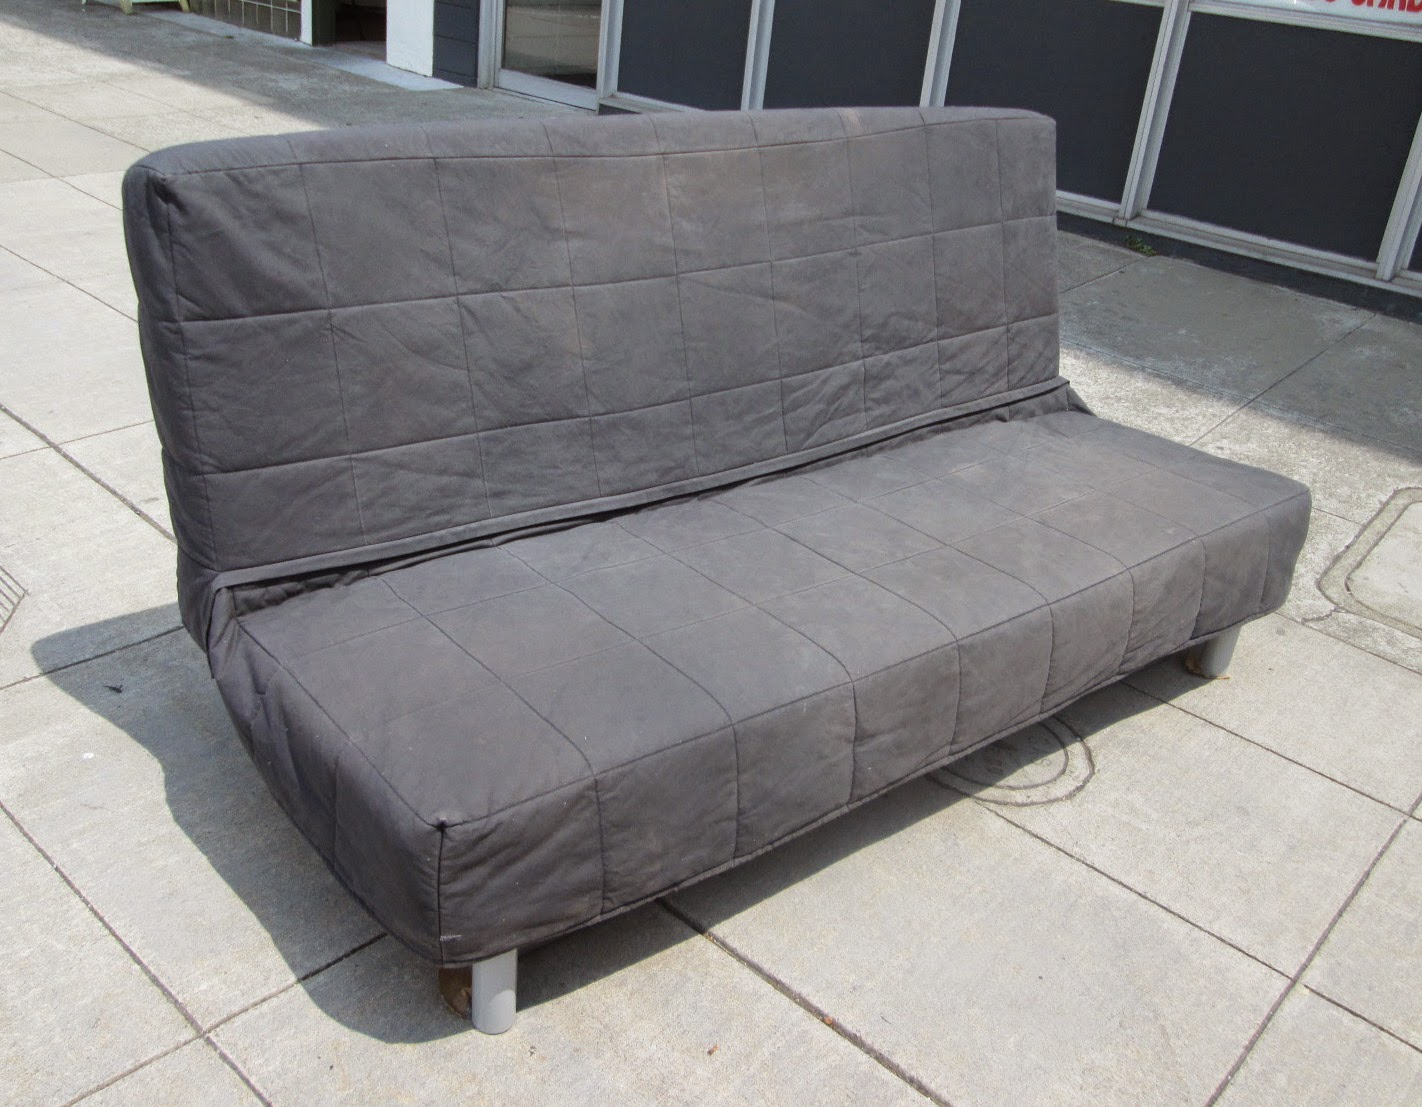 UHURU FURNITURE & COLLECTIBLES: SOLD IKEA Futon with Cover - $80